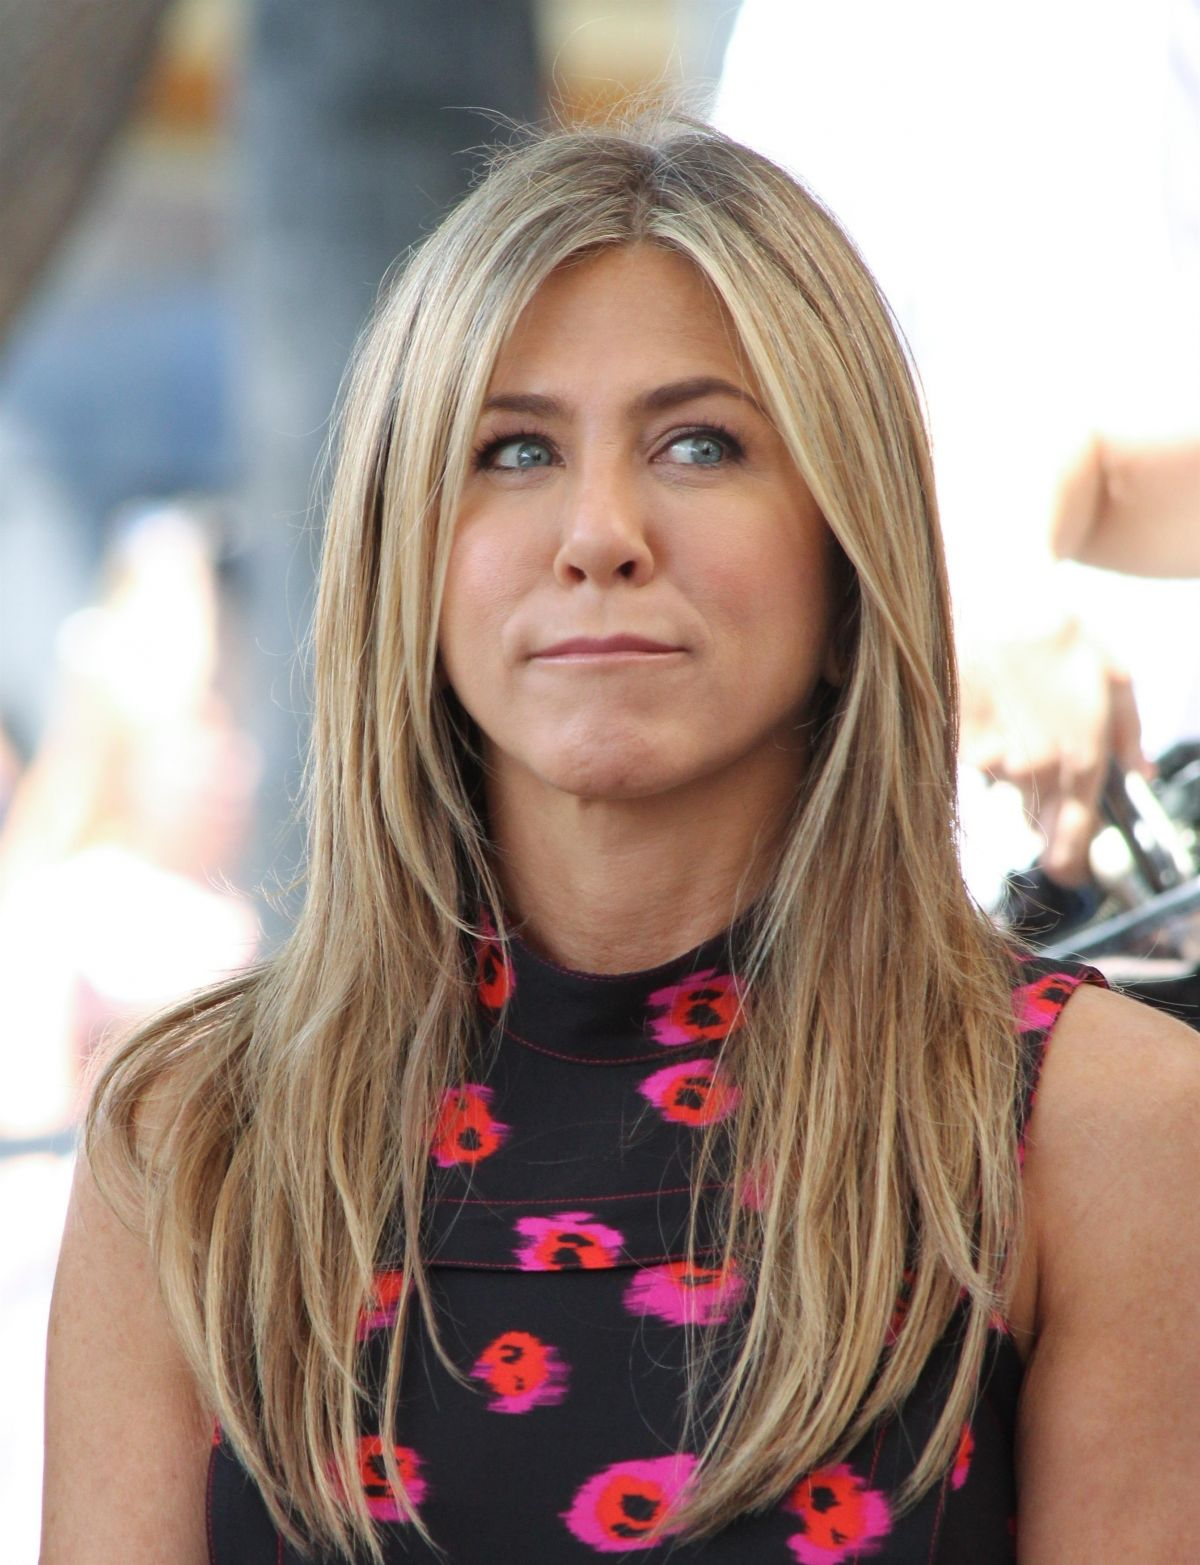 Jennifer Aniston At Jason Bateman's Hollywood Star Ceremony in Hollywood   jennifer-aniston-at-jason-bateman-s-hollywood-star-ceremony-in-hollywood_9